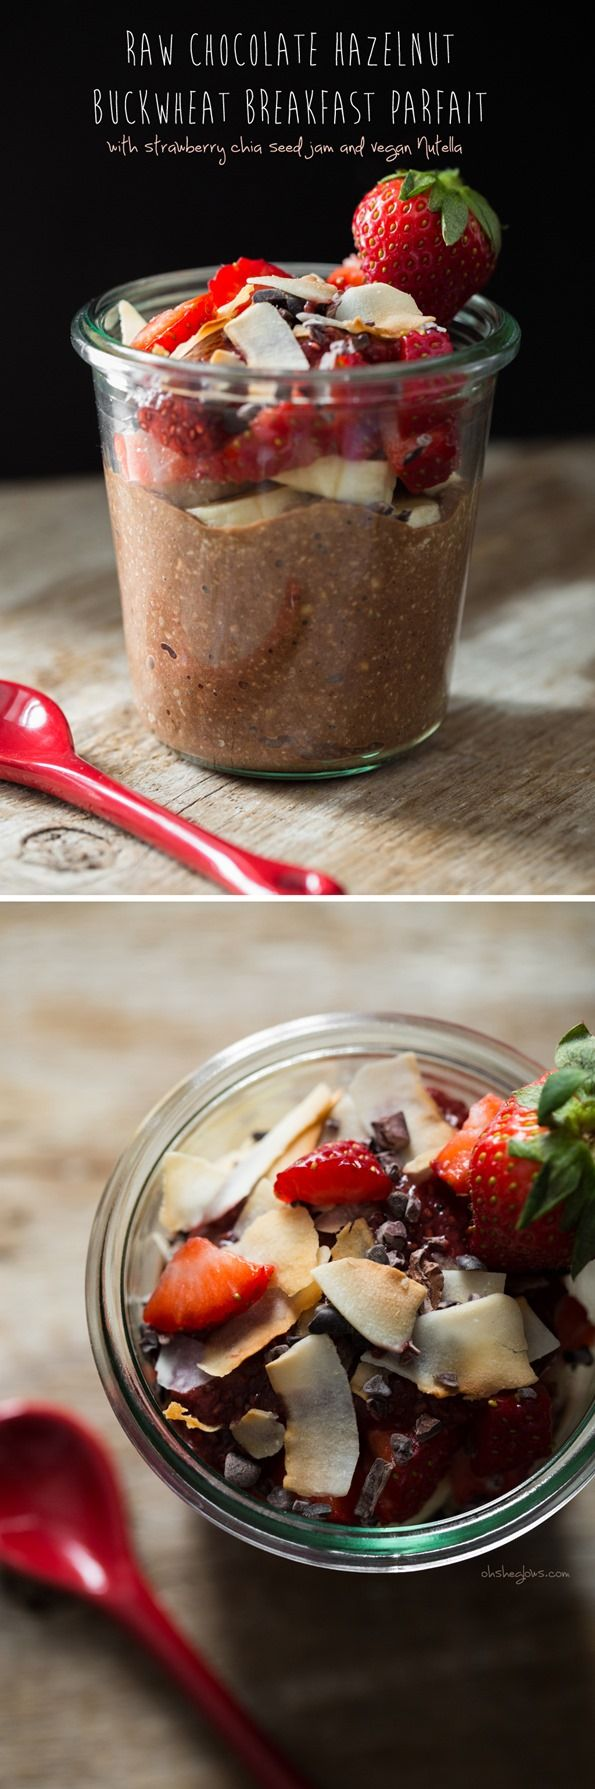 I love this Raw Chocolate Hazelnut Breakfast Parfait! Vegan and Gluten-free. An easy, portable breakfast you can whip up the night before. From Oh She Glows.